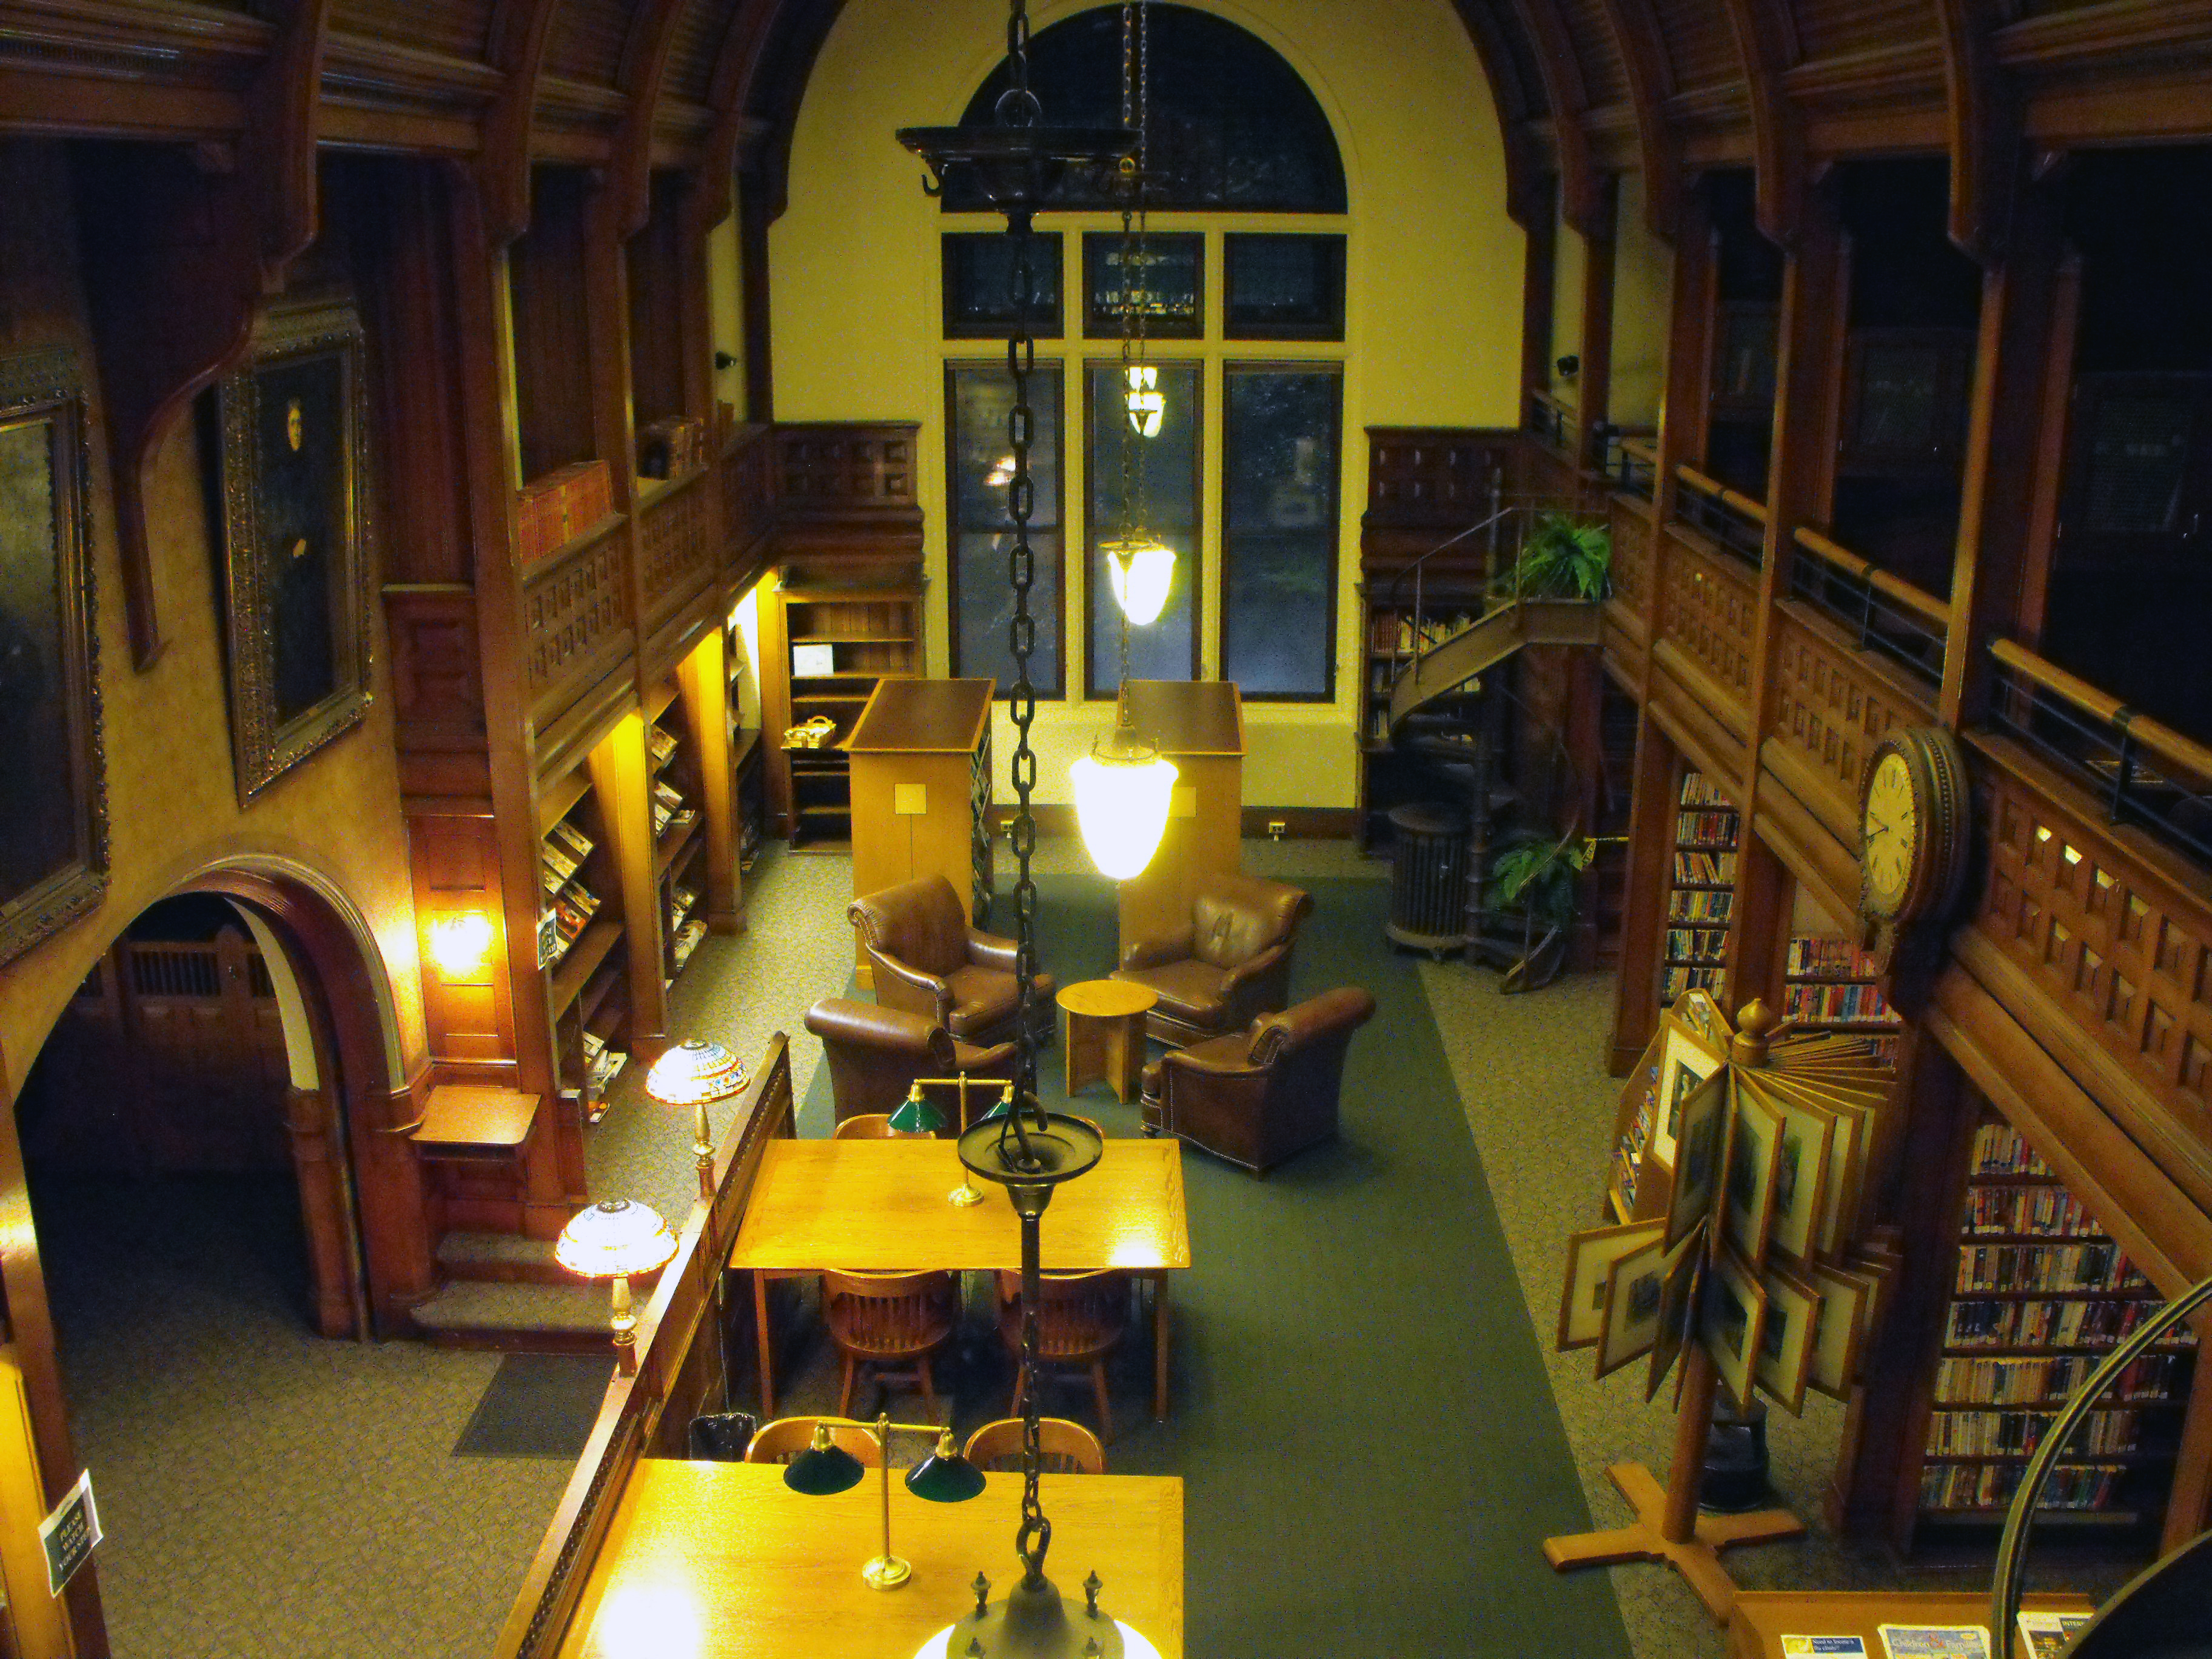 The interior of the original library building, now primarily study space.